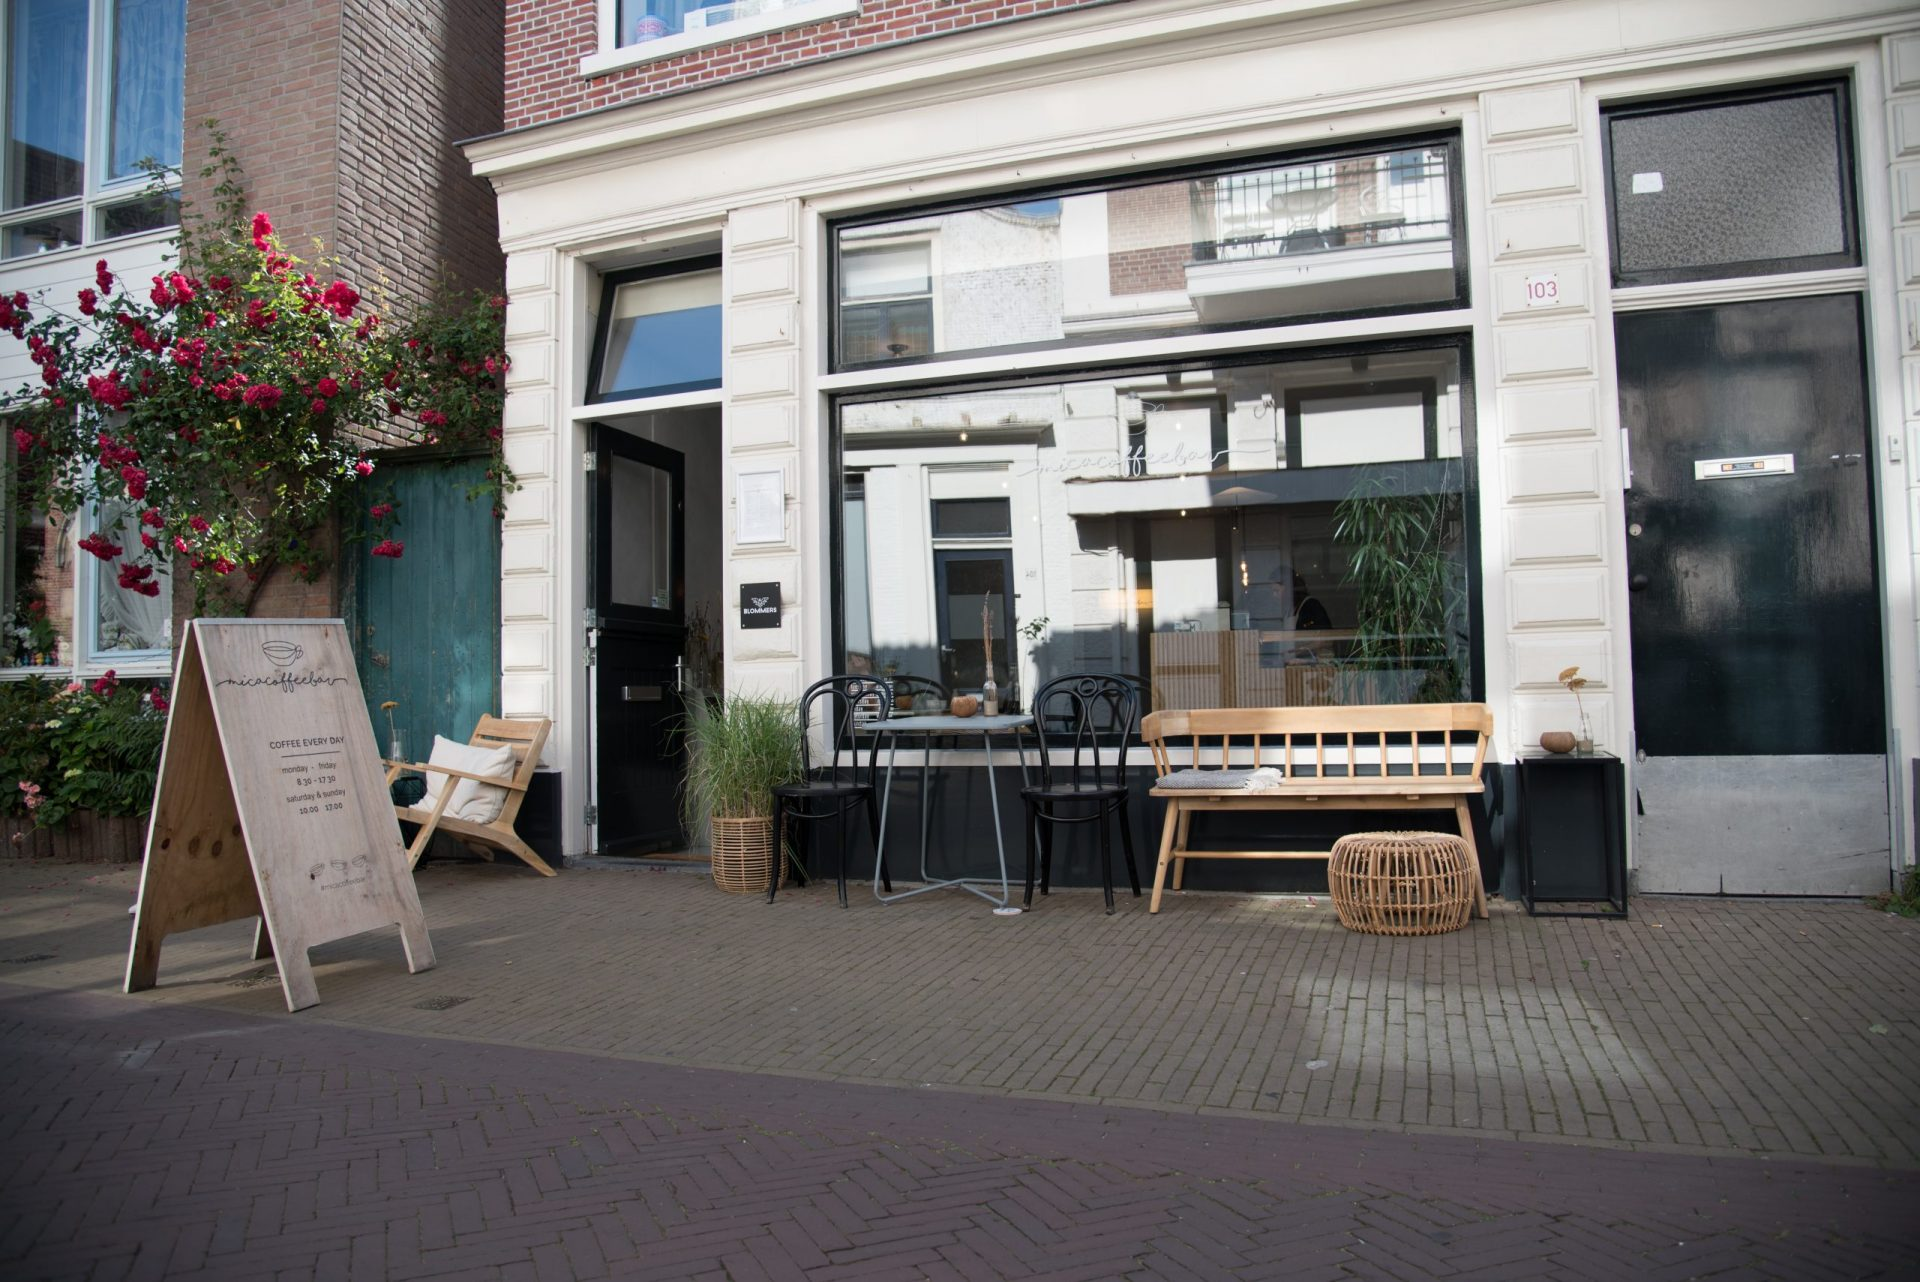 Mica Coffee Bar in Haarlem